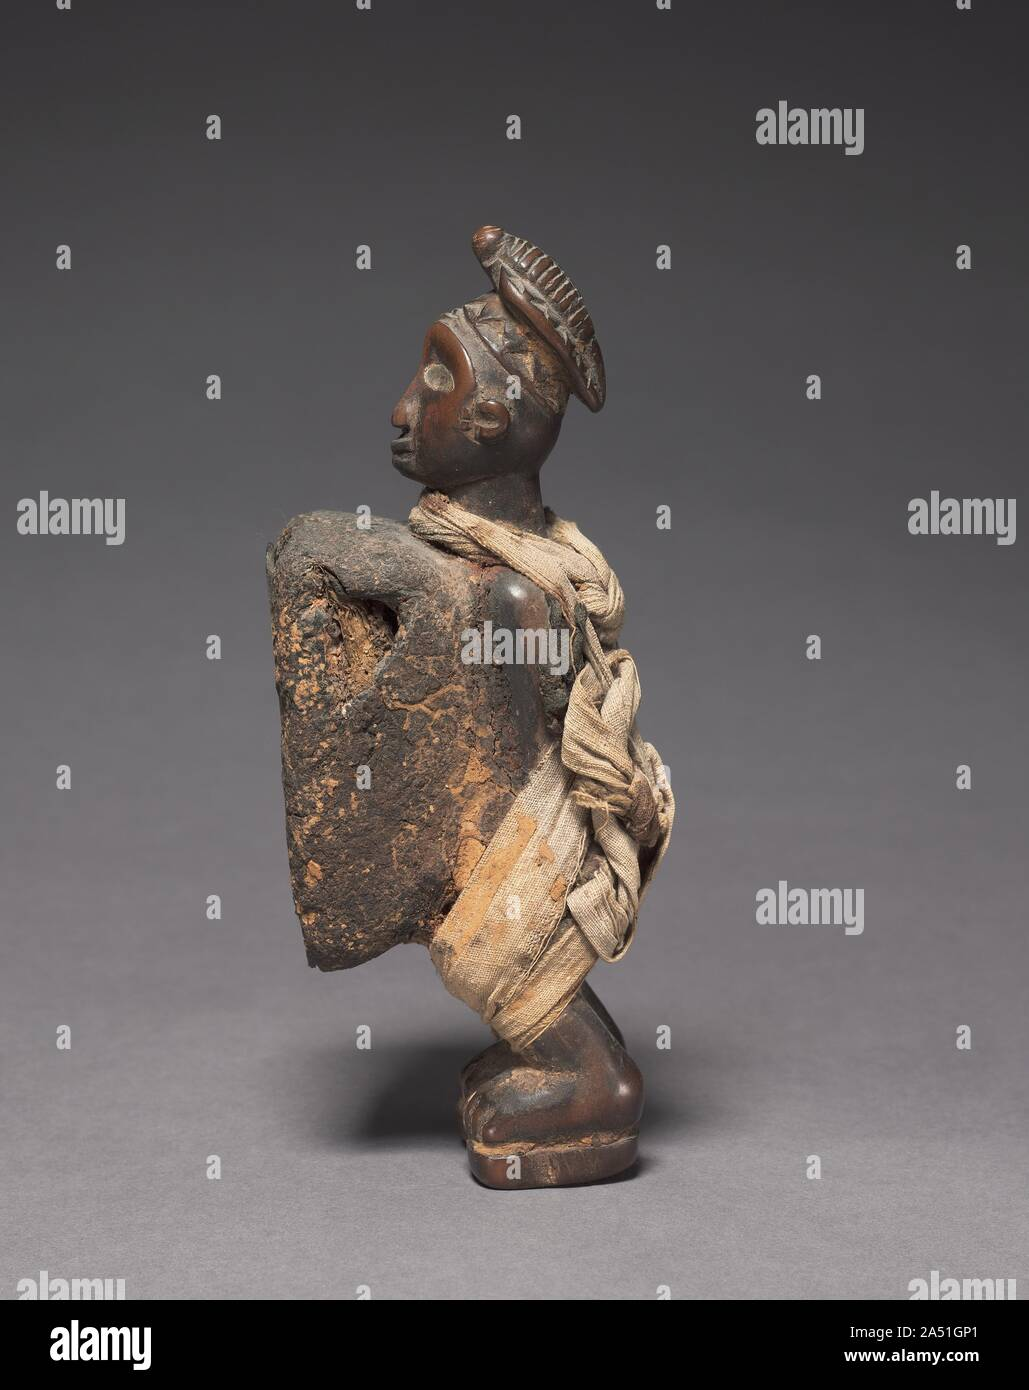 Male Figurine, late 1800s-early 1900s. This human-shaped  nkisi  in Yombe style—one of the most typical forms a spirit container can take among Kongo speakers in west-central Africa—features an enormous mirror-covered package on its stomach that is remarkably intact, meaning that the figure was not decommissioned before sale or disposal. The cloth bands and knots looped around its neck and down its back and fixed around its legs suggest that it was used to bind agreements or oaths. Most intriguing is the carving of a pangolin or scaly anteater atop the head, which represents lead Stock Photo